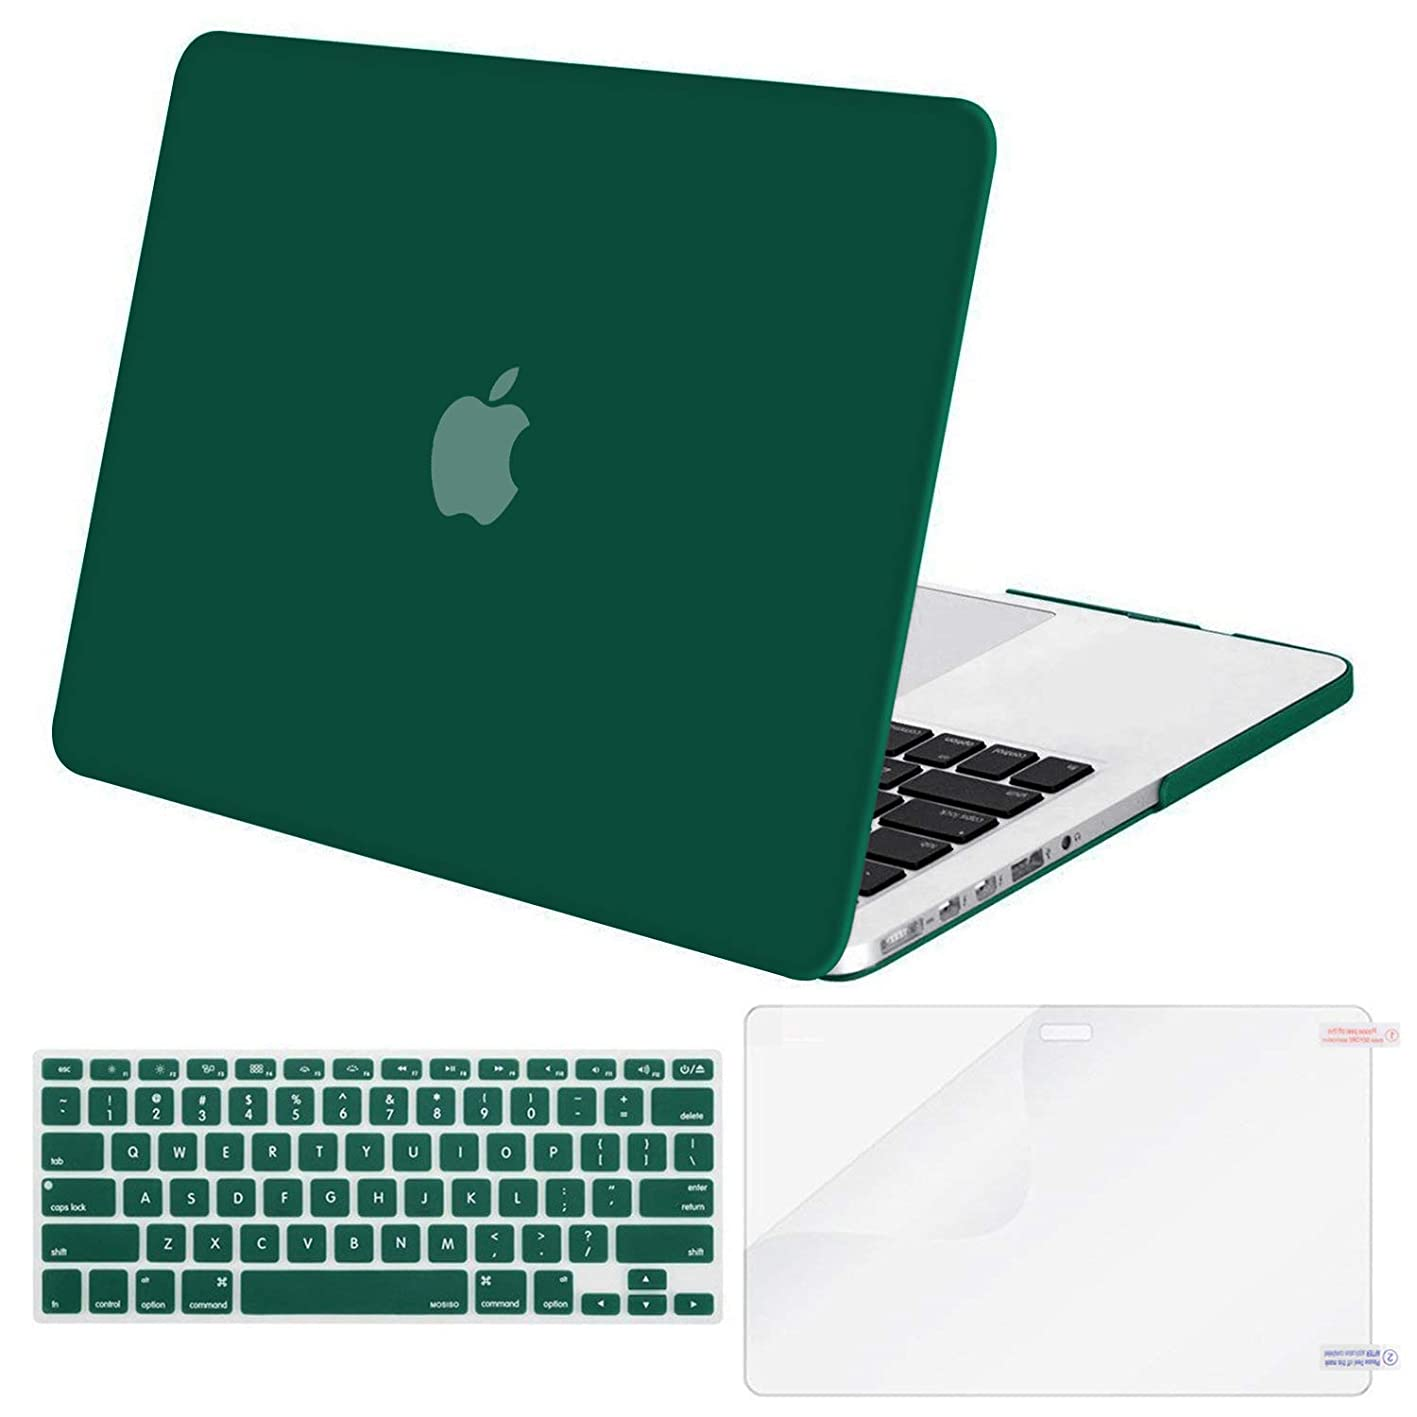 MOSISO Case Only Compatible Older Version MacBook Pro Retina 13 Inch (Model: A1502 & A1425) (Release 2015 - end 2012), Plastic Hard Shell & Keyboard Cover & Screen Protector, Peacock Green vzzlbbhoksc400